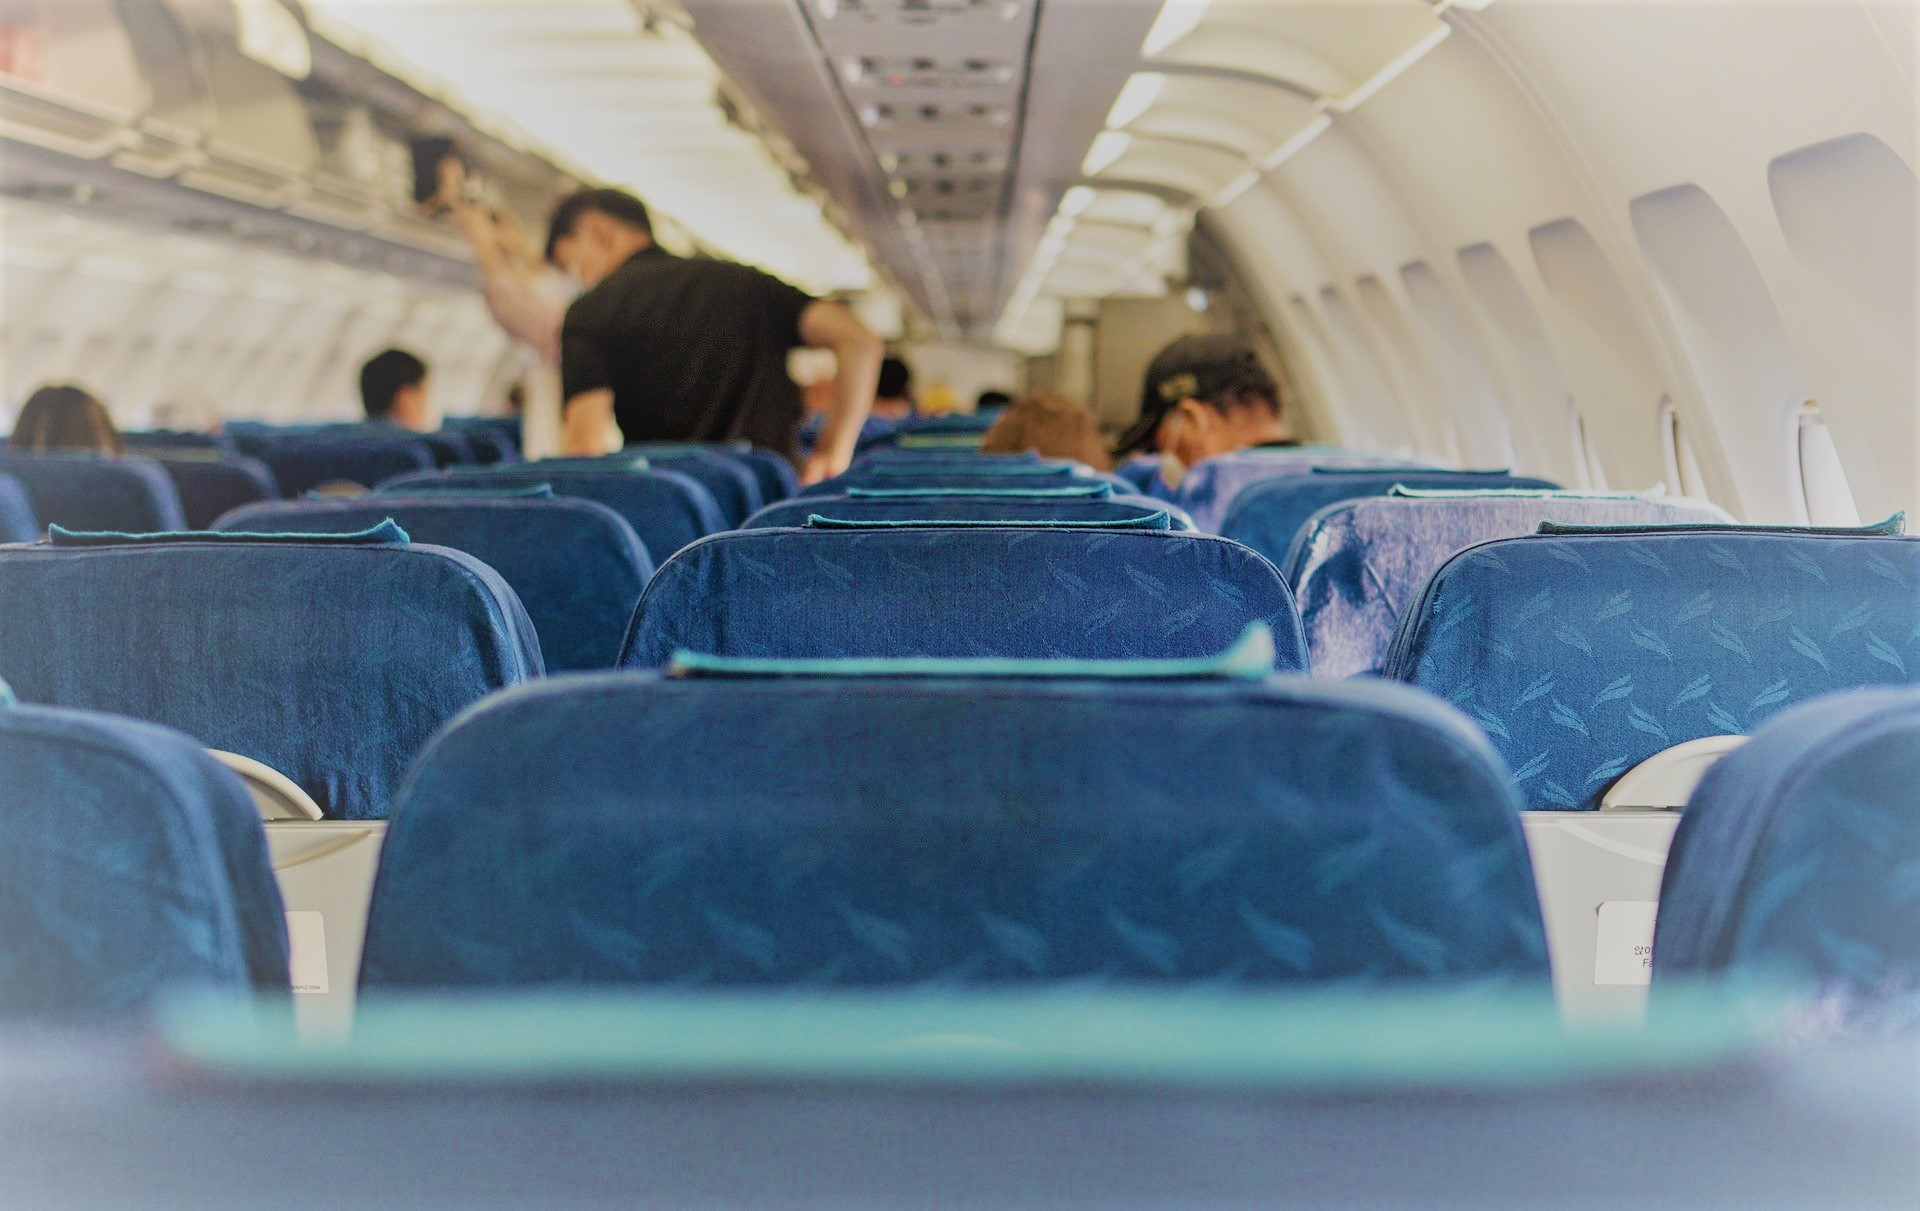 airplane cabin, wearing masks